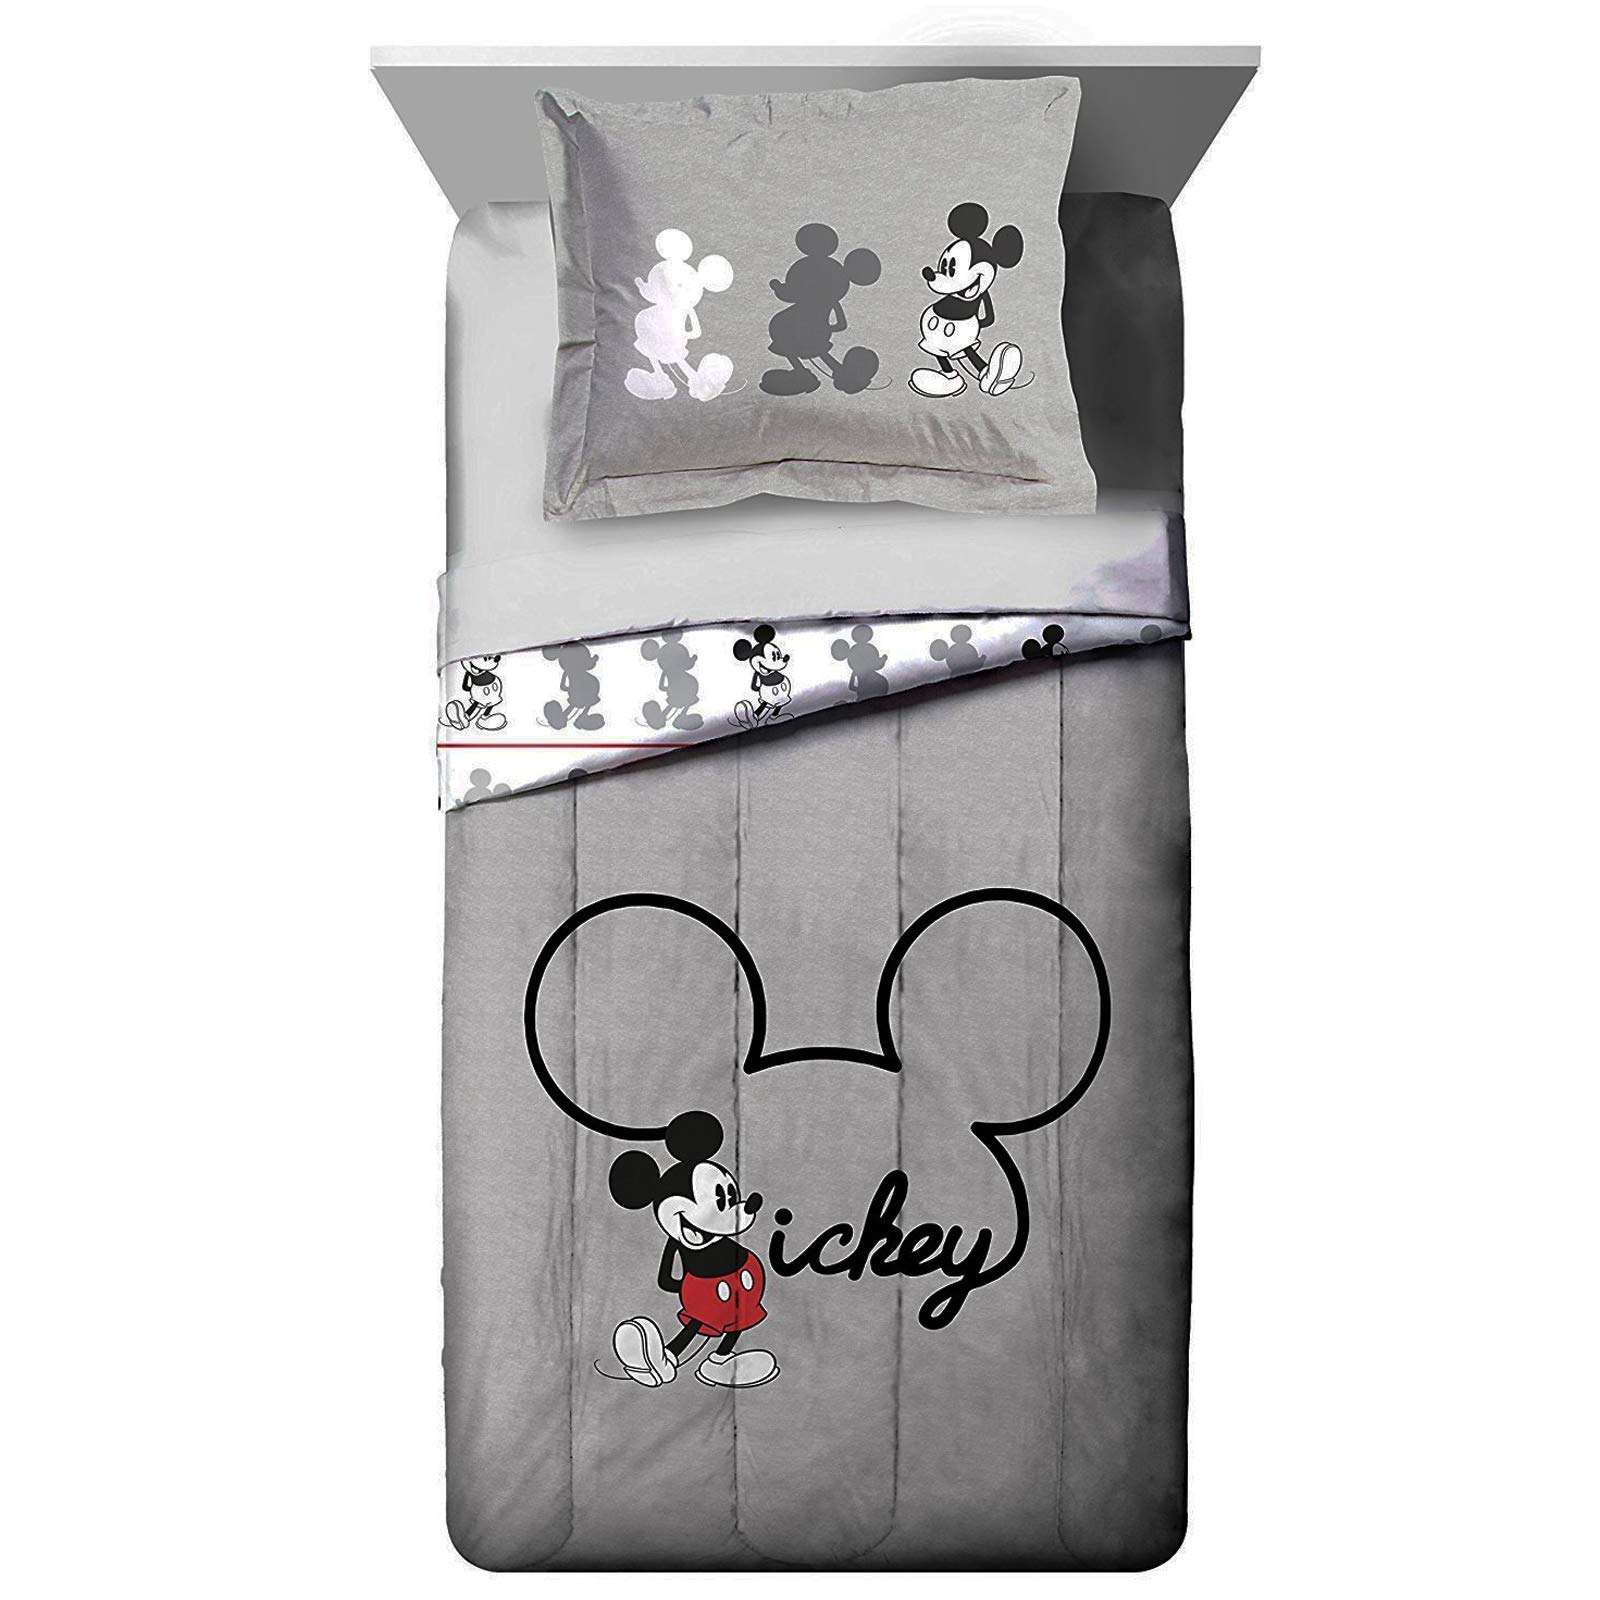 Jay Franco Disney Mickey Mouse Jersey Twin/Full Comforter - Super Soft Kids Reversible Bedding Features Mickey Mouse - Fade Resistant Polyester Includes 1 Bonus Sham (Official Disney Product) by Jay Franco